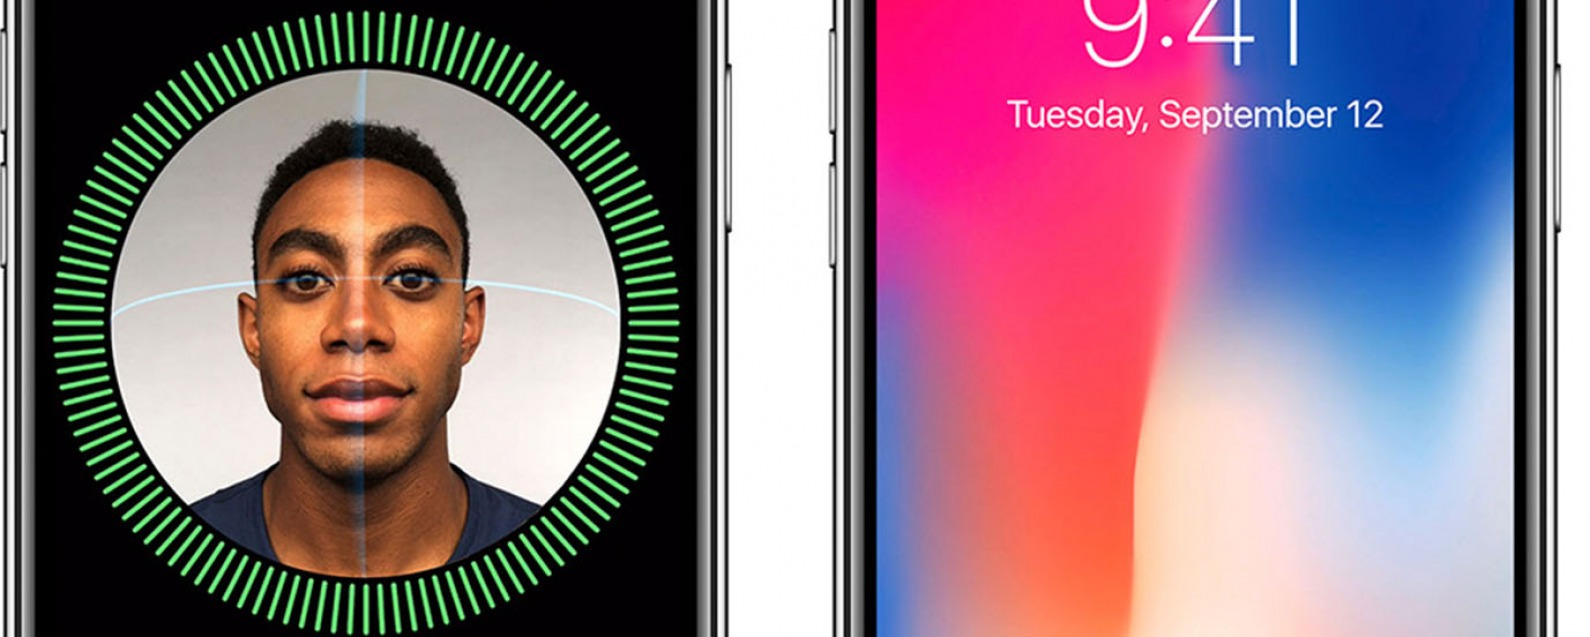 iOS 12 Hidden Feature: Face ID to Allow Two Different Faces